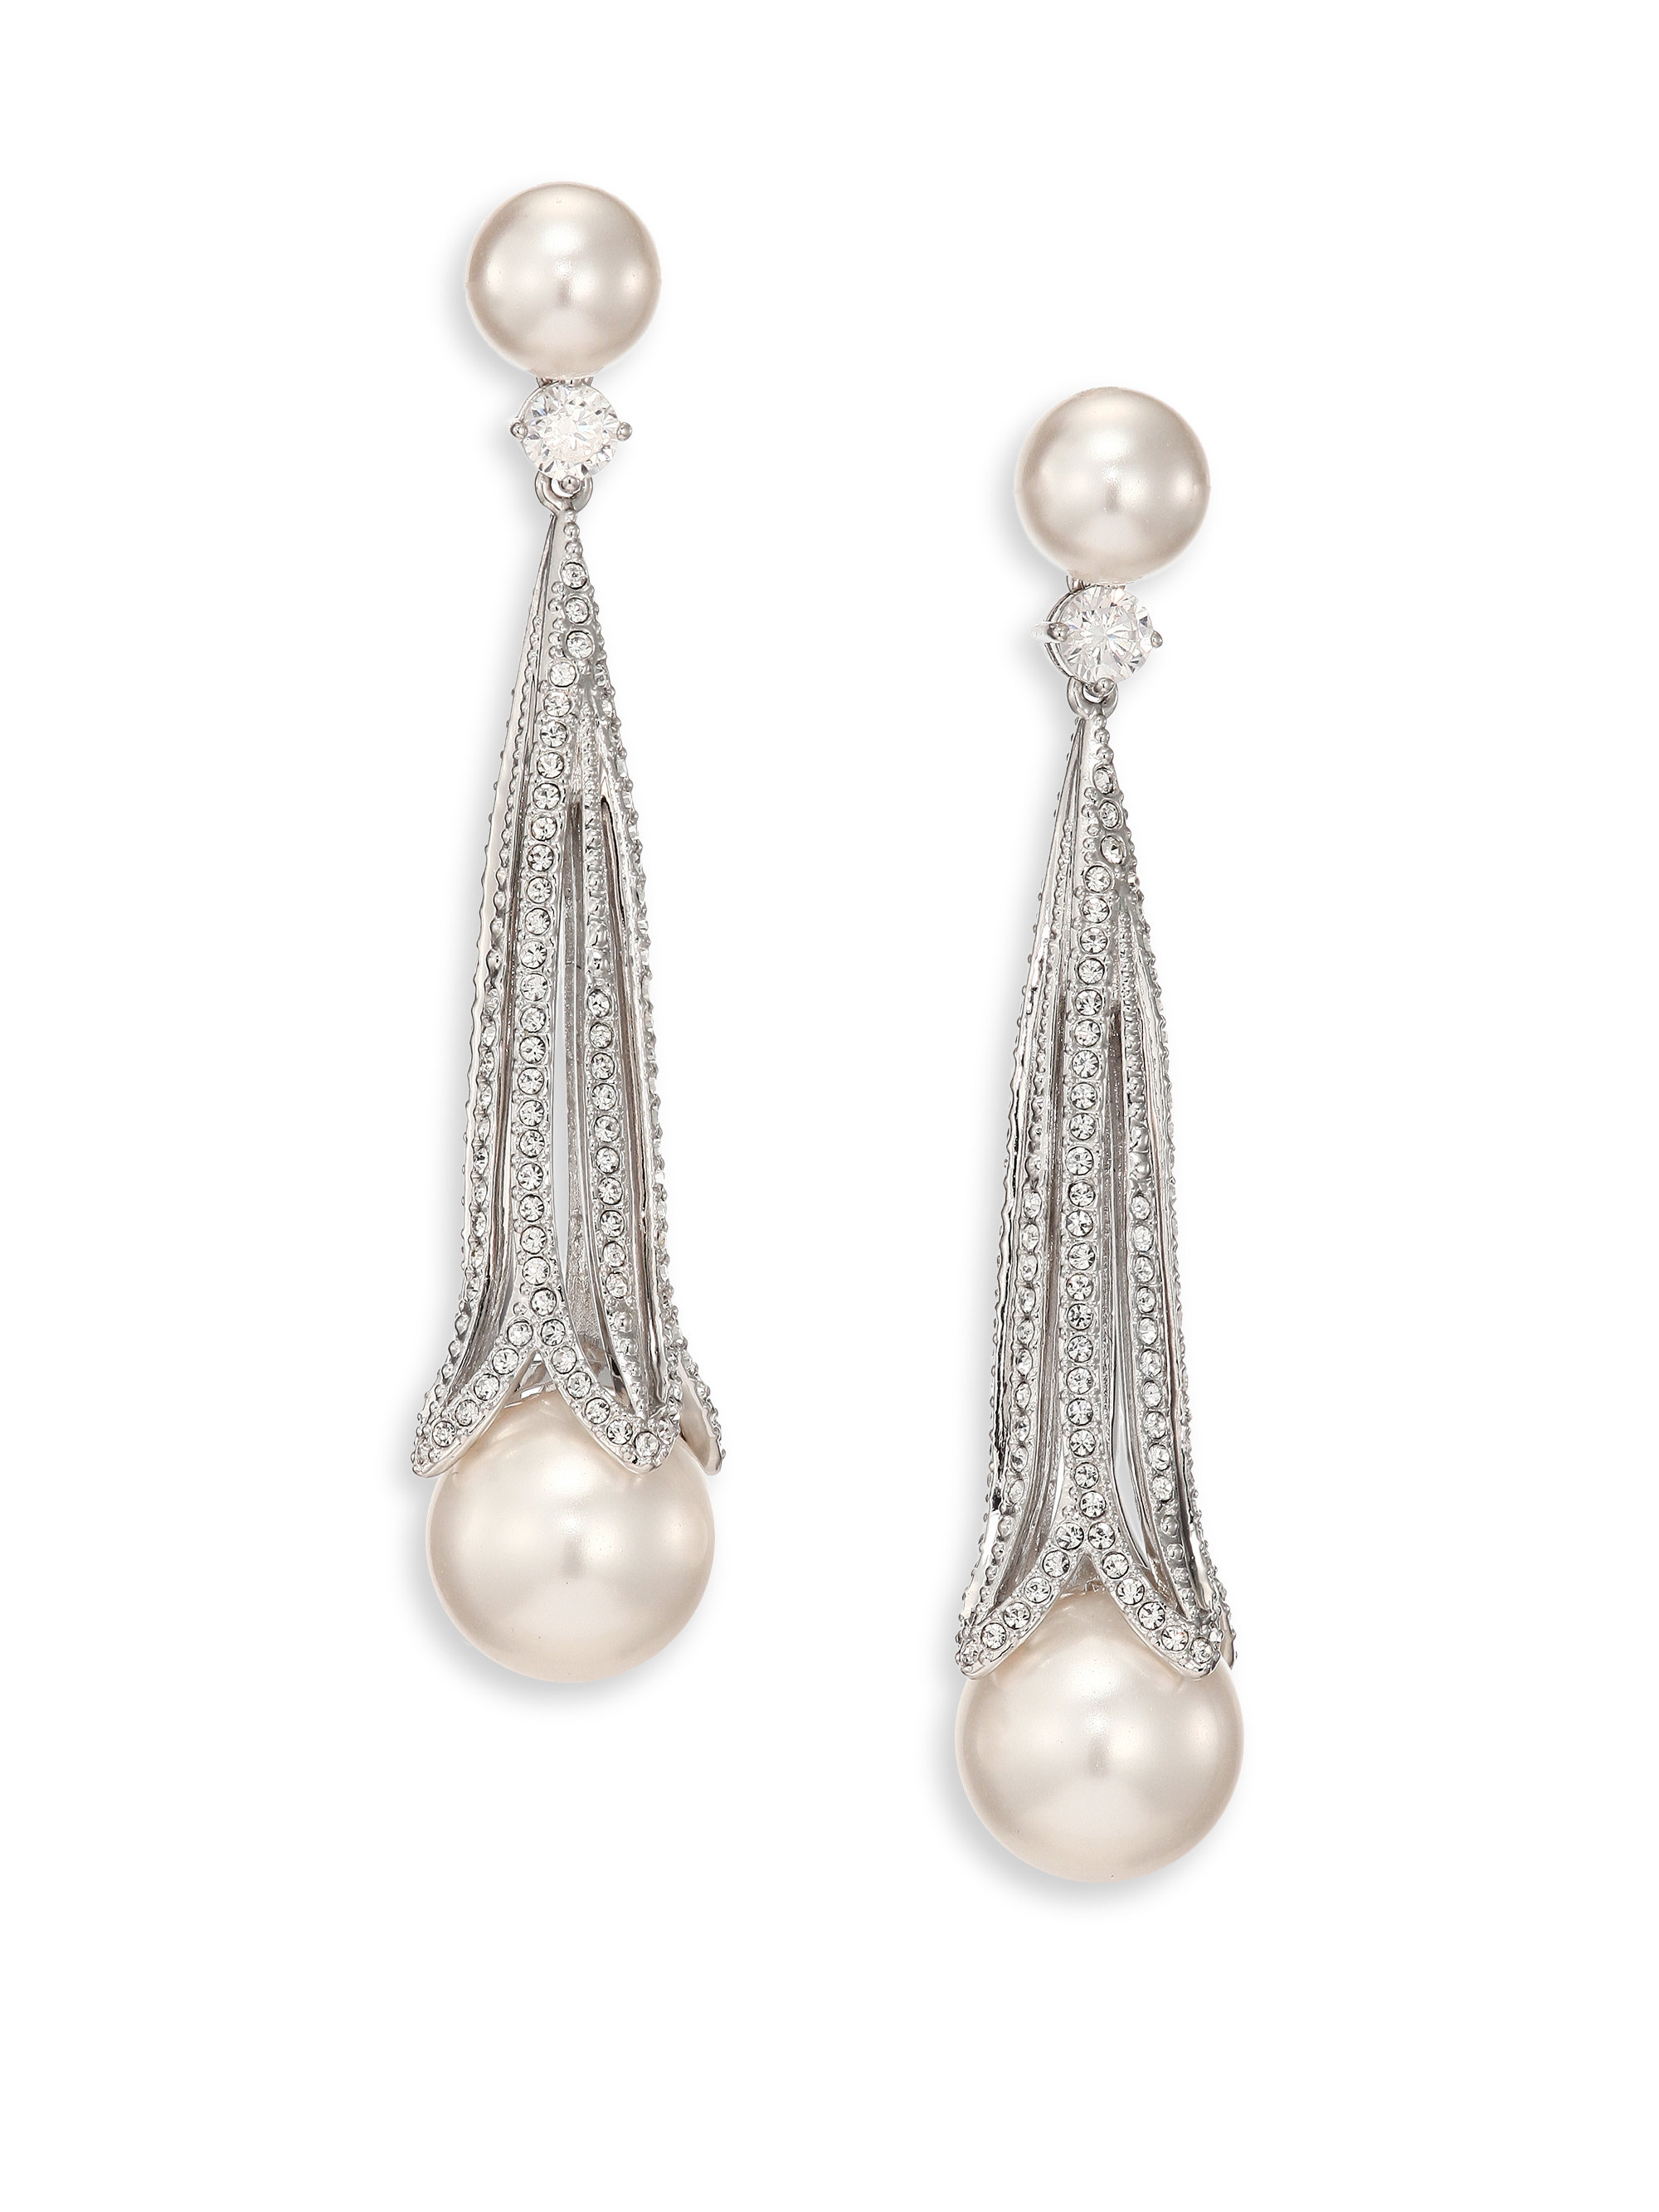 Long Drop Pearl Earrings Best All Earring Photos Kamiliol